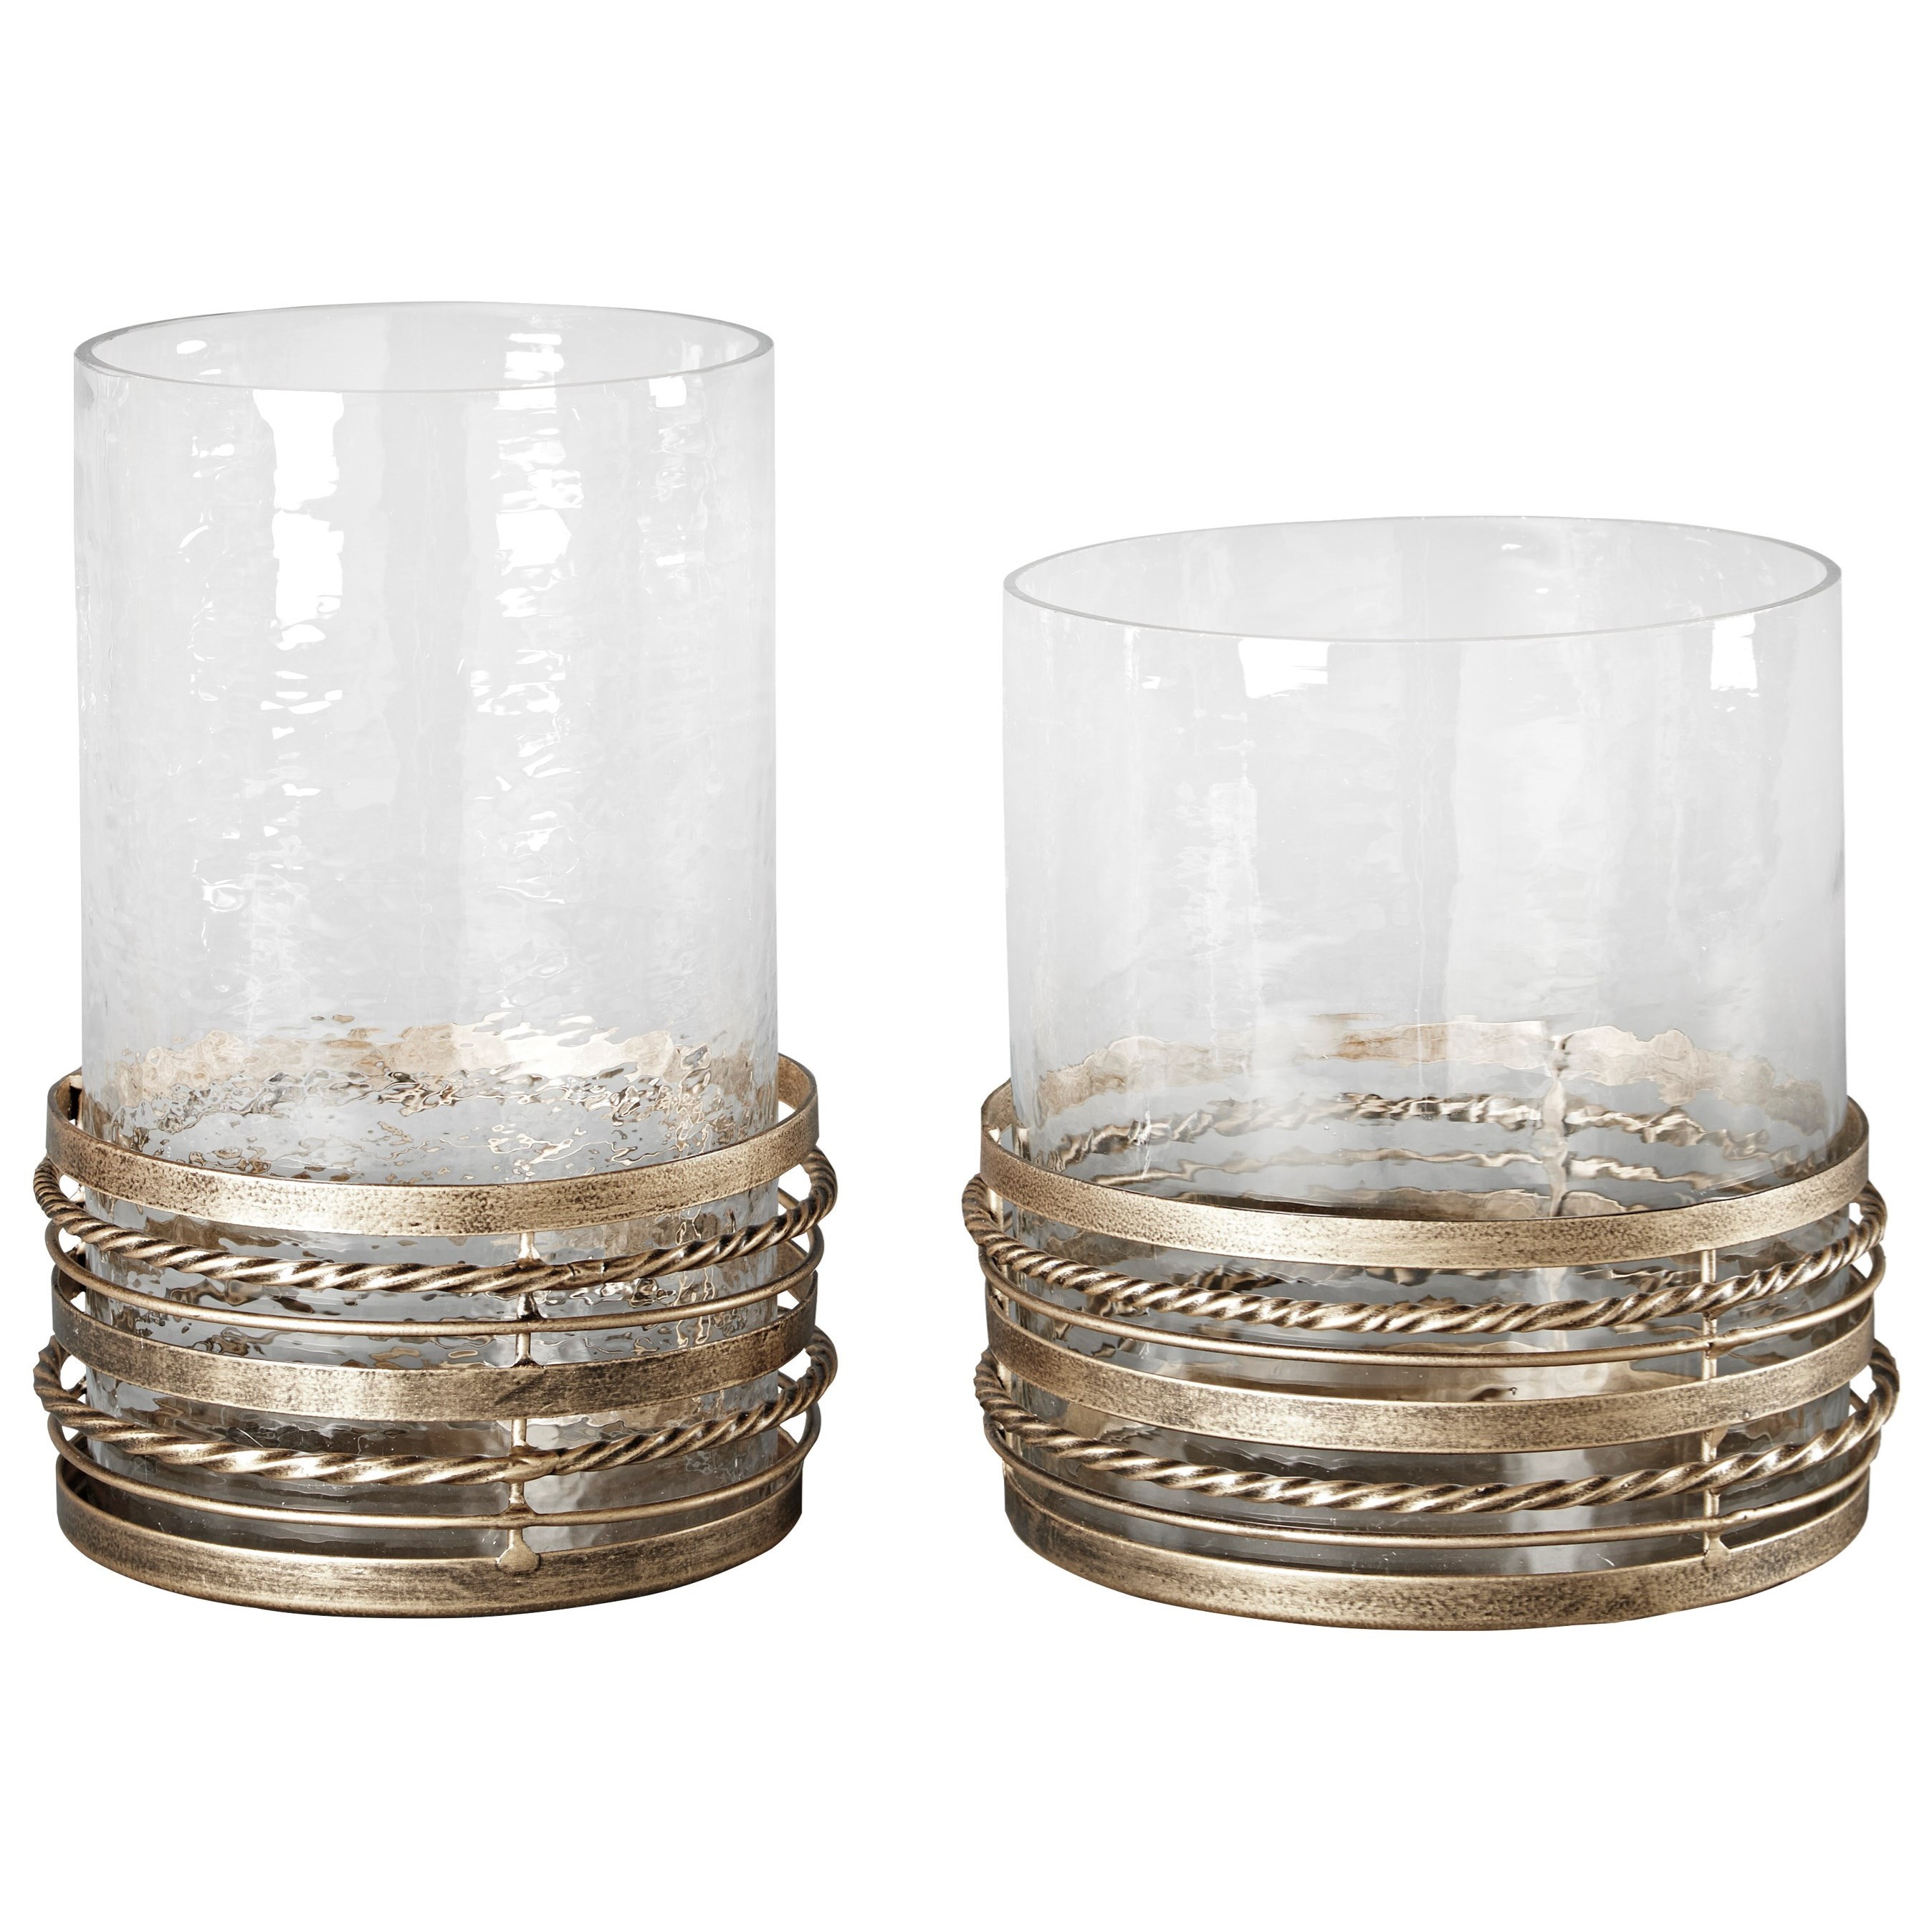 Signature Design by Ashley Accents Obaida - Antique Gold Finish Candle Holders - Item Number: A2000203C